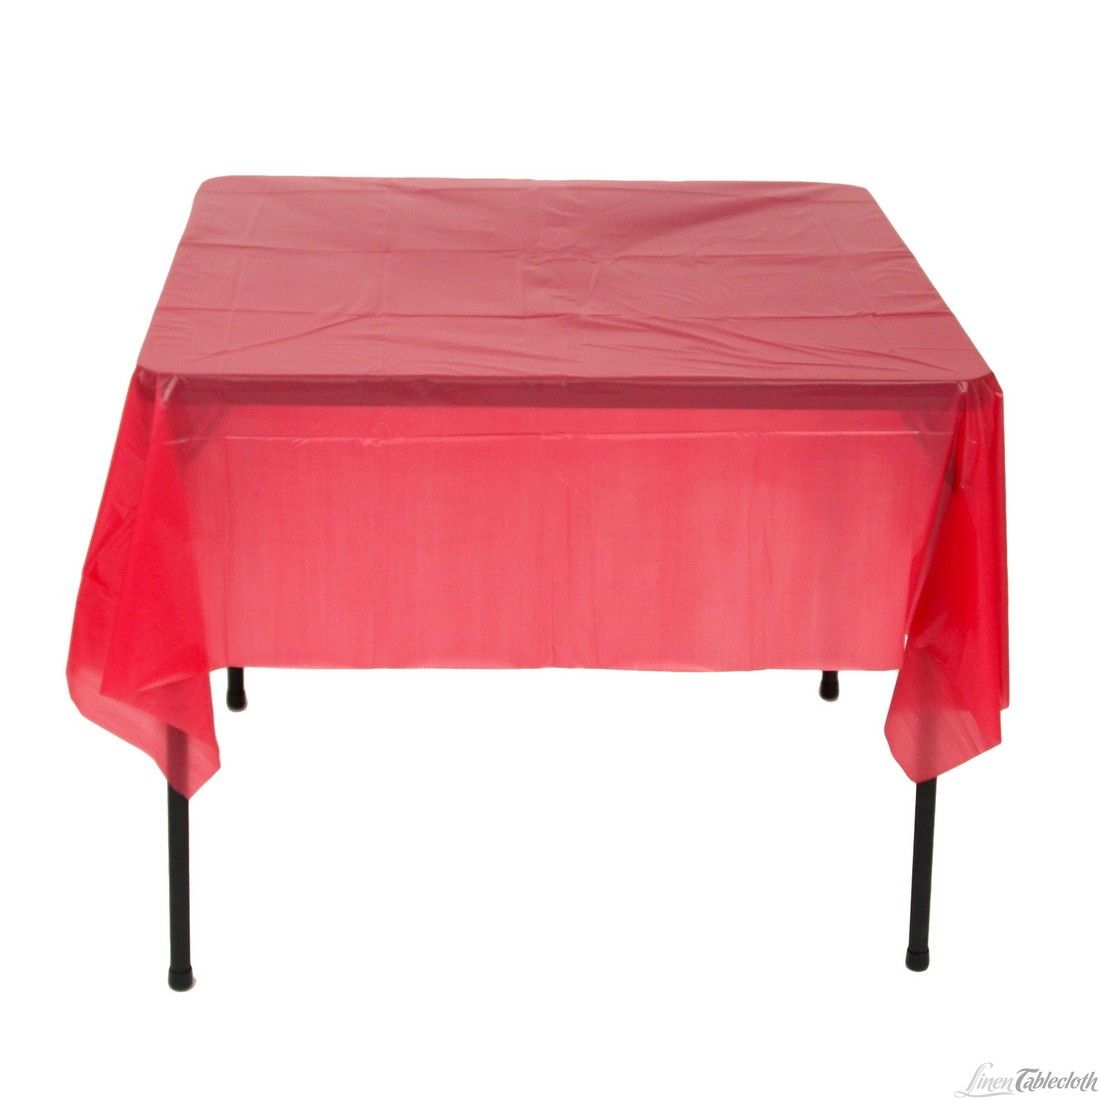 Square Disposable Plastic Tablecloth Red For Only $1.35 At  Linentablecloth.com Perfect For Any Wedding And Event!